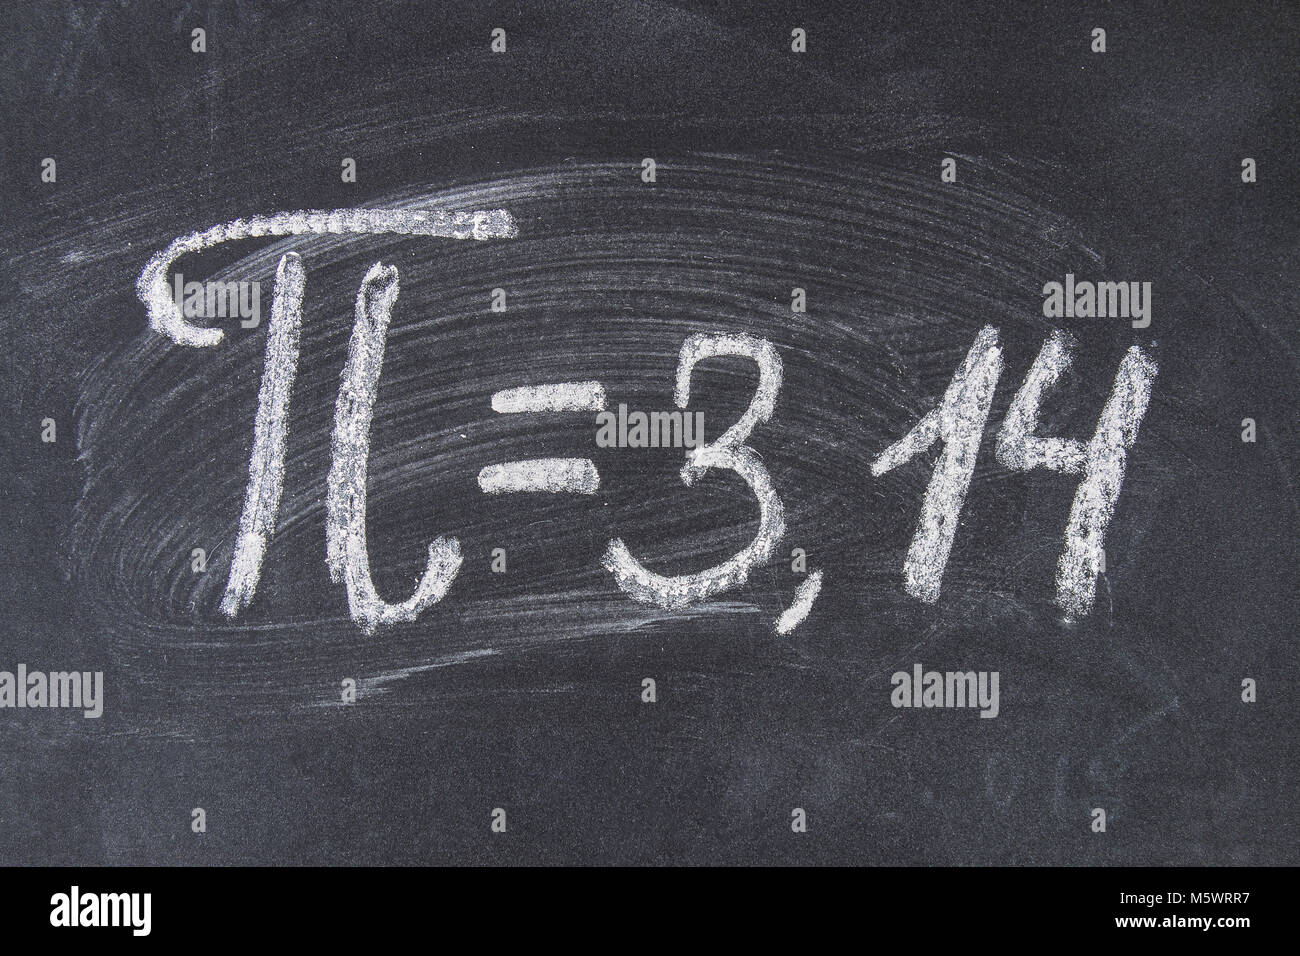 The Mathematical Sign Or Symbol For Pi On A Blackboard Stock Photo